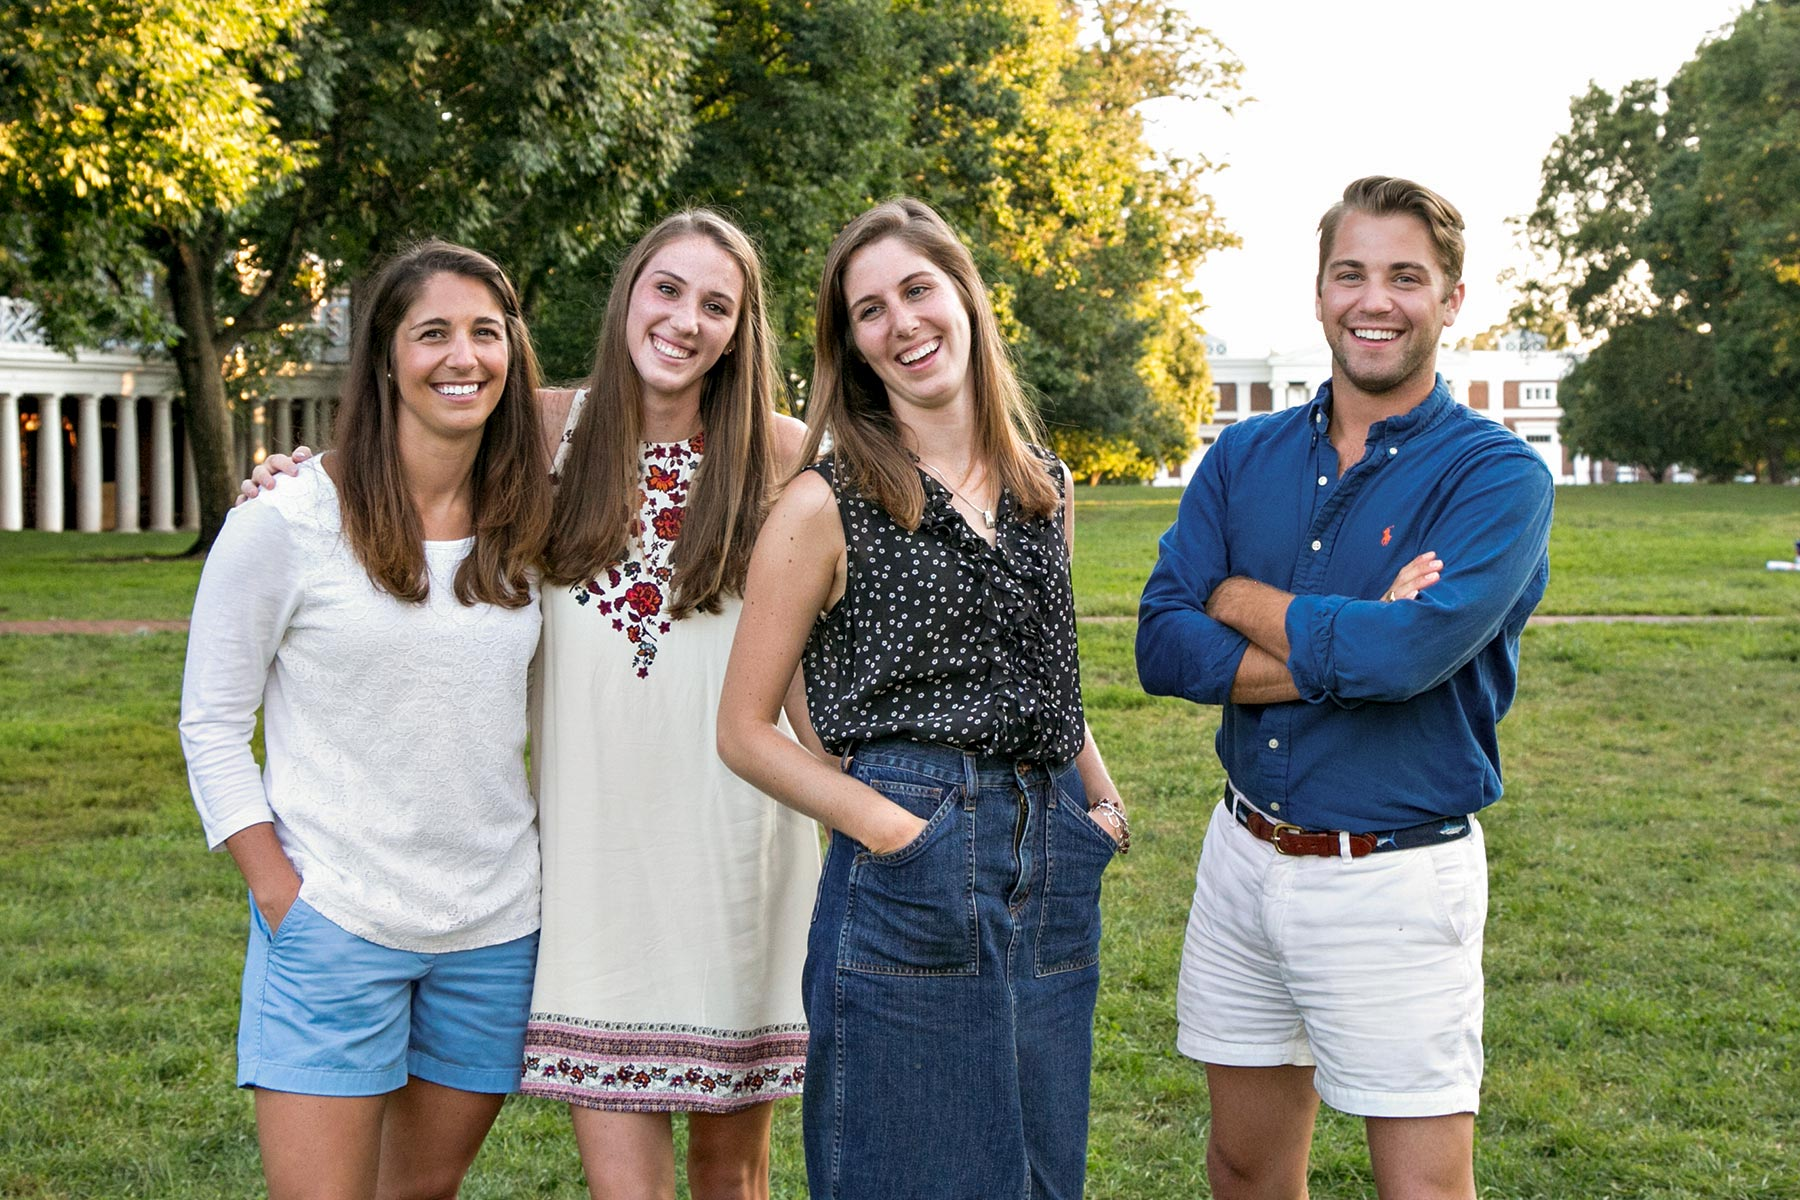 Catesby Willis (second from left), a rising senior  on the field hockey team, is a sixth-generation UVA student, pictured here with her siblings and fellow Hoos.